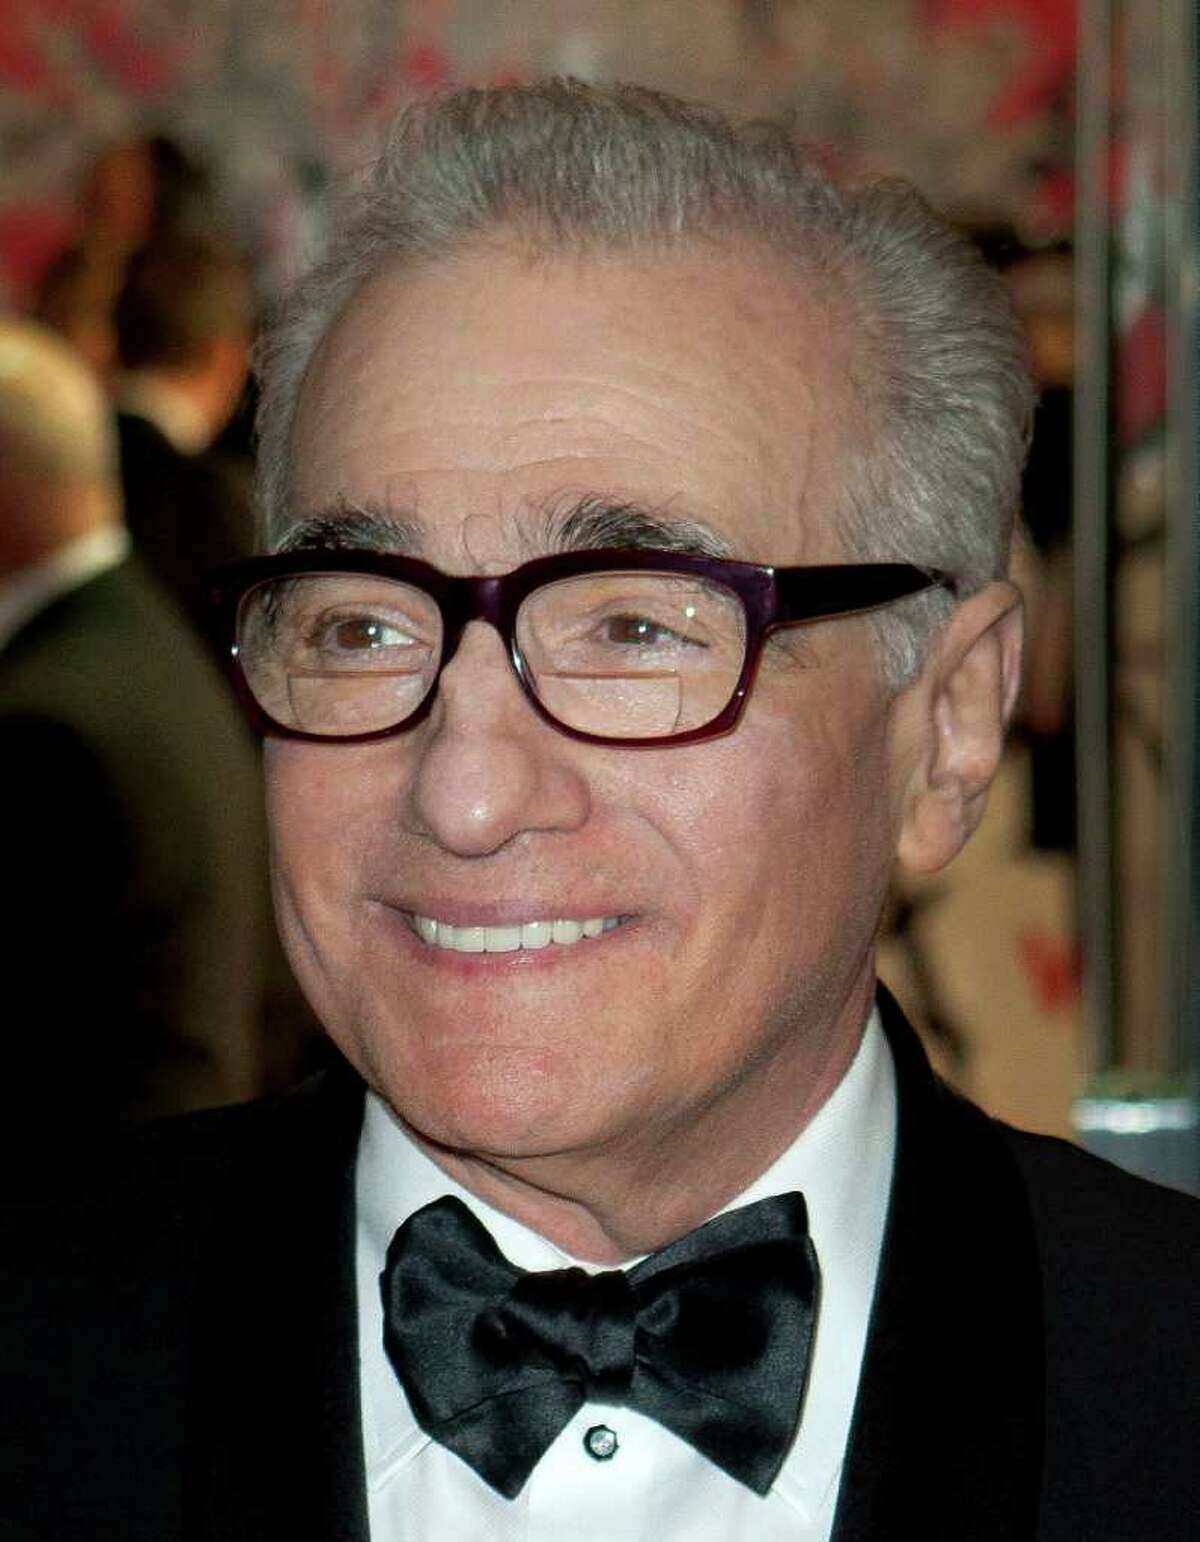 """FILE - In this Nov. 28, 2011 file photo, director Martin Scorsese arrives for the Royal Film Performance of """"Hugo,"""" in London. Scorsese was nominated Monday, Jan. 9, 2012 for the DGA Award for Outstanding Directorial Achievement in Feature Film for """"Hugo."""" Scorsese is also nominated for his documentary ?""""George Harrison: Living in the Material World.?"""" (AP Photo/Joel Ryan, file)"""